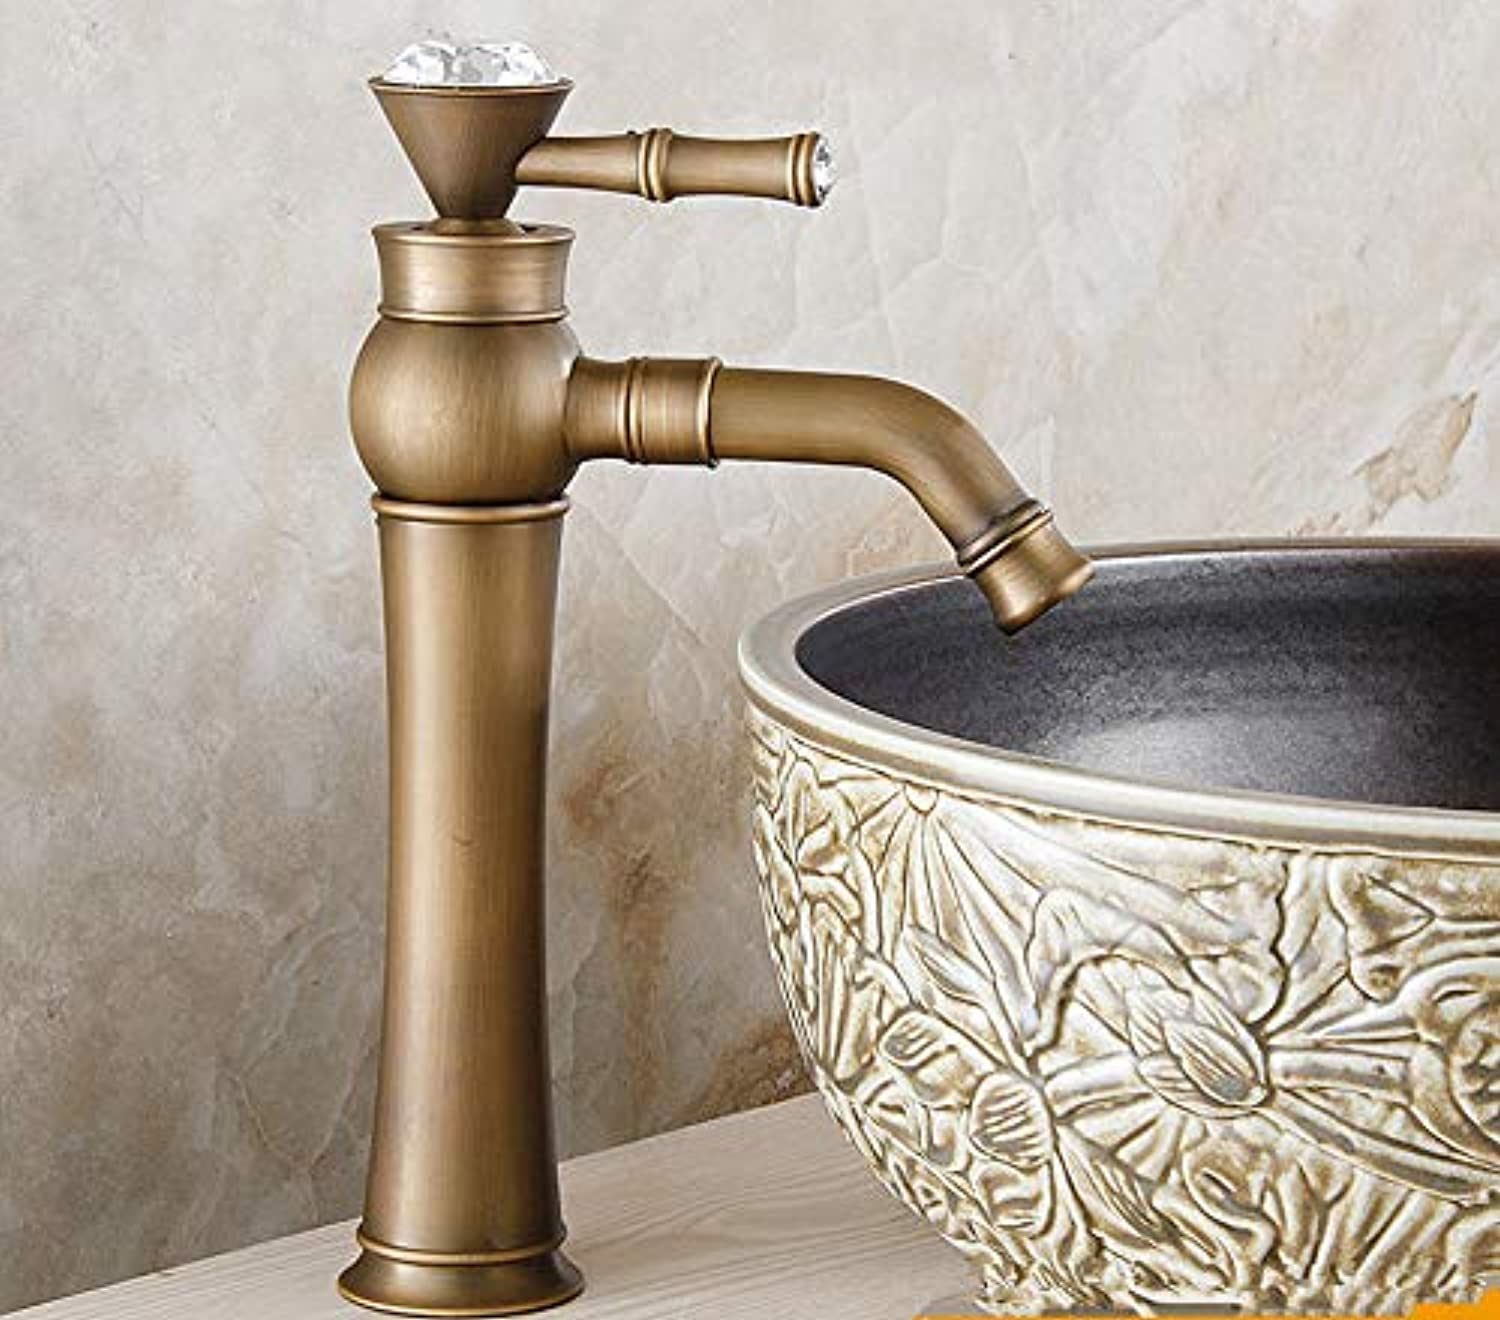 XPYFaucet Faucet Tap Taps All-copper European redating basin retro hot and cold water antique color heightening